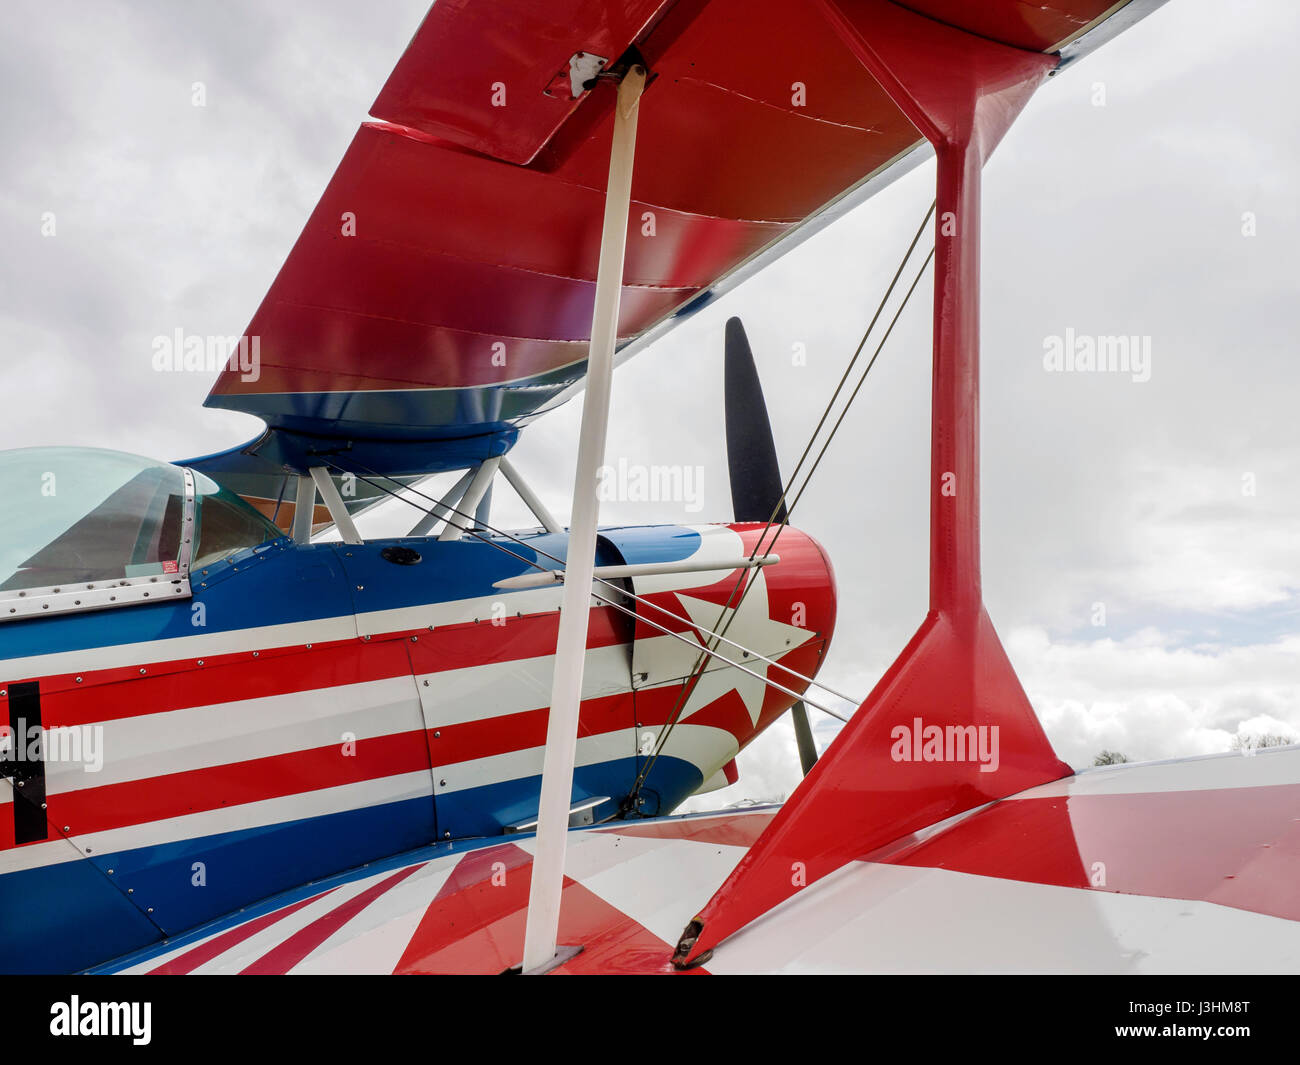 A Pitts S-1S aerobatic bi-plane registration G-BSRH and desiged by Curtis Pitts in the 1940's parked at Popham - Stock Image